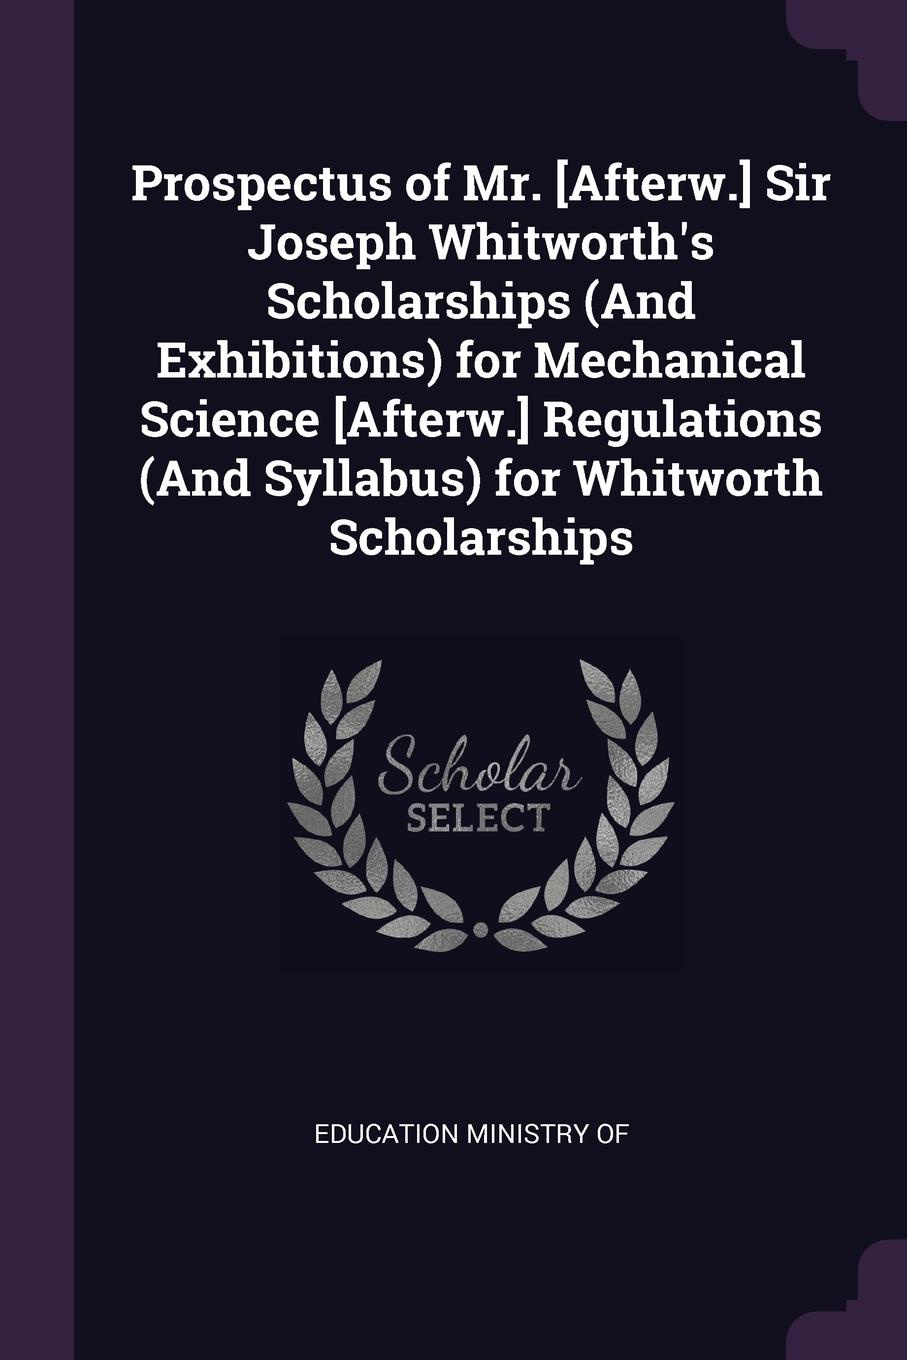 Prospectus-of-Mr-Afterw-Sir-Joseph-Whitworths-Scholarships-And-Exhibitions-for-Mechanical-Science-Afterw-Regulations-And-Syllabus-for-Whitworth-Schola